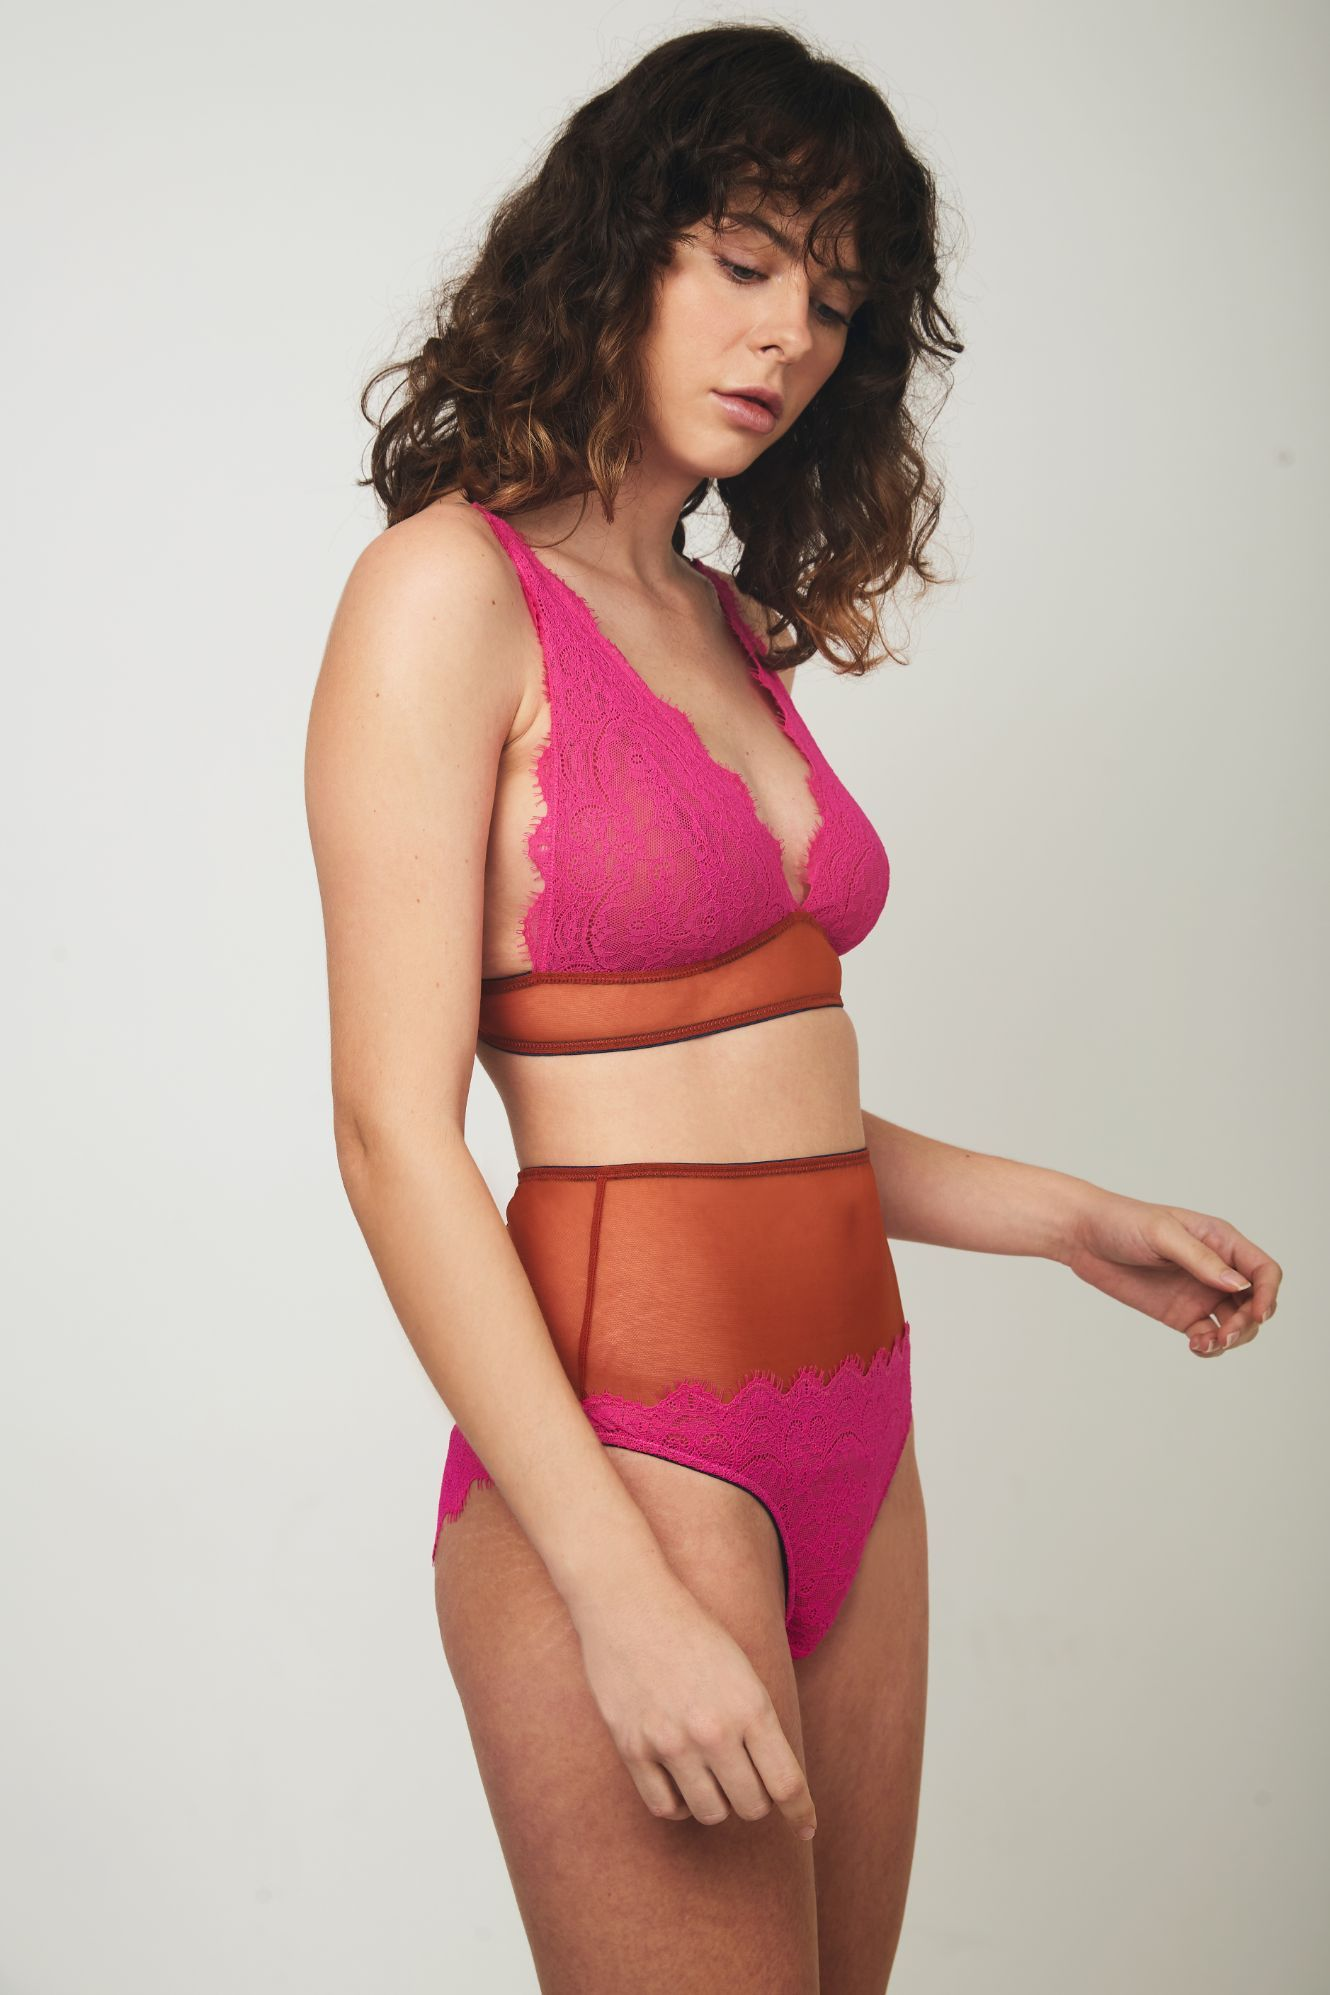 Natalie High Apex Triangle Bra - Dora Larsen | Colourful Lingerie